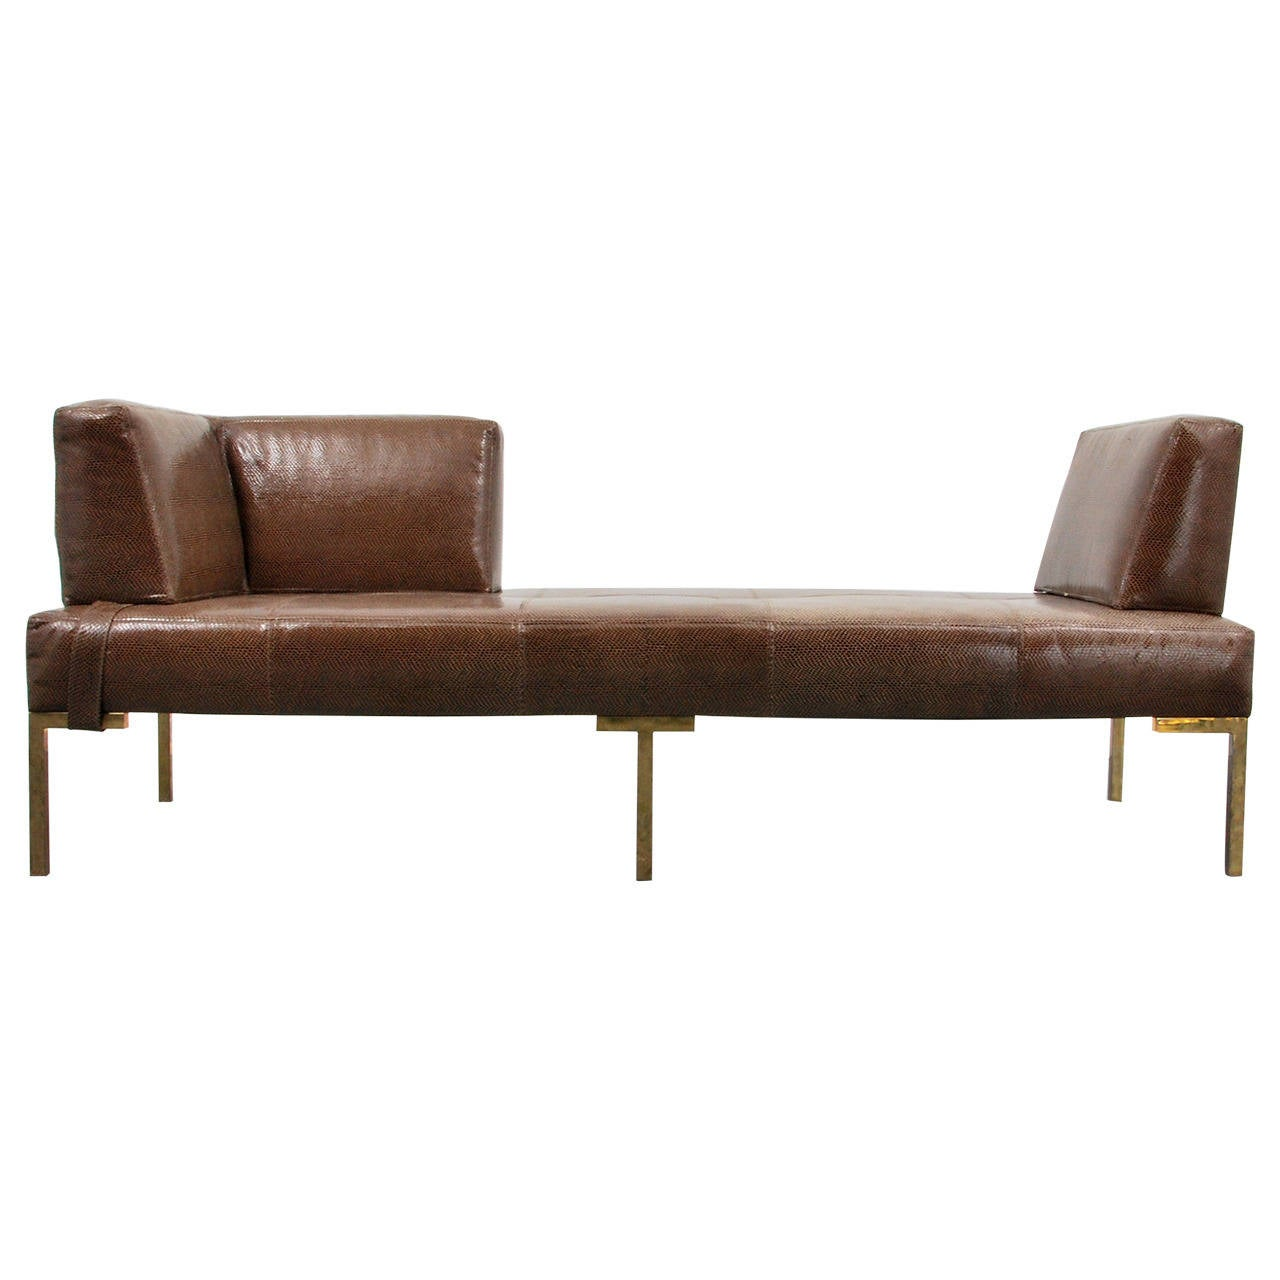 luigi gentile leather daybeds or chaise lounges two